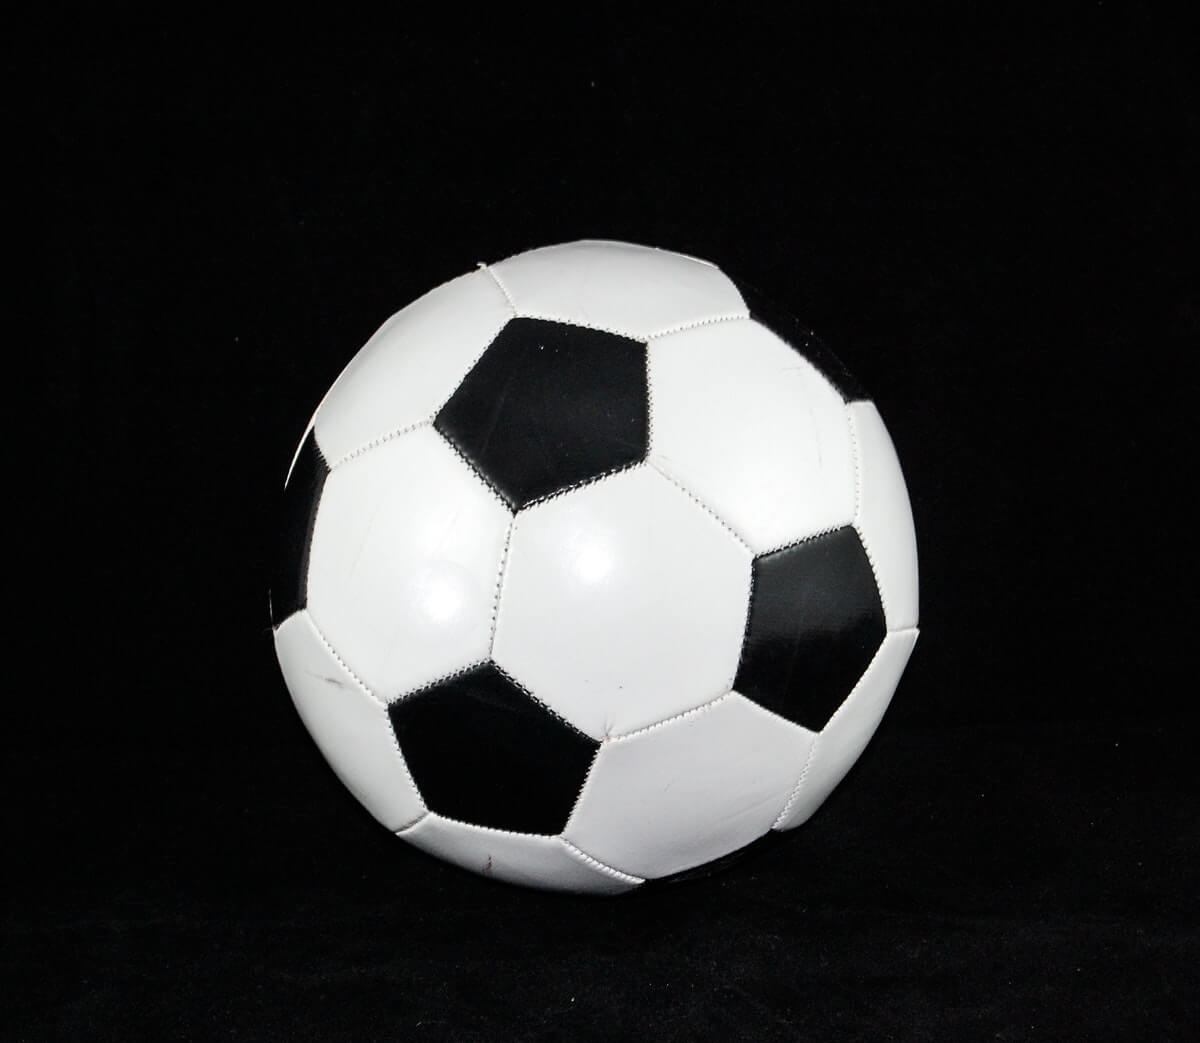 ball-soccer-soccer-ball-52504-pexels (1)